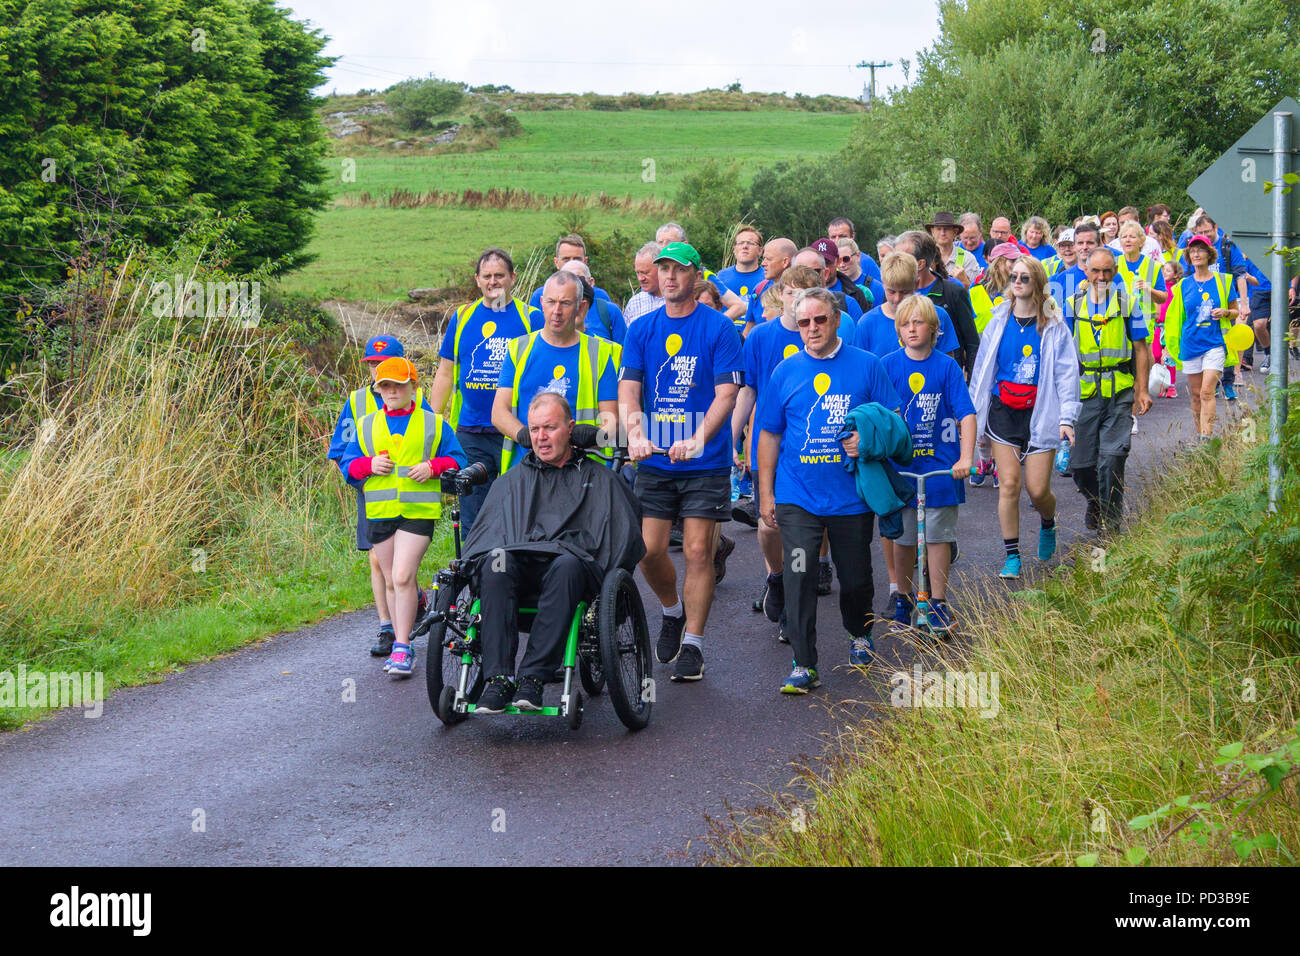 ballydehob-west-cork-ireland-6th-august-2018-father-tony-coote-today-completed-his-epic-walk-while-you-can-walk-to-raise-awareness-for-the-irish-motor-neurone-disease-association-father-tony-coote-already-a-sufferer-of-motor-neurone-disease-started-back-on-10th-july-in-letterkenny-donegal-and-finished-today-6th-august-in-ballydehob-west-cork-a-total-of-545km-he-was-joined-for-the-final-stage-by-a-huge-crowd-of-fellow-walkers-and-well-wishers-who-accompanied-him-into-ballydehob-credit-aphperspectivealamy-live-news-PD3B9E.jpg